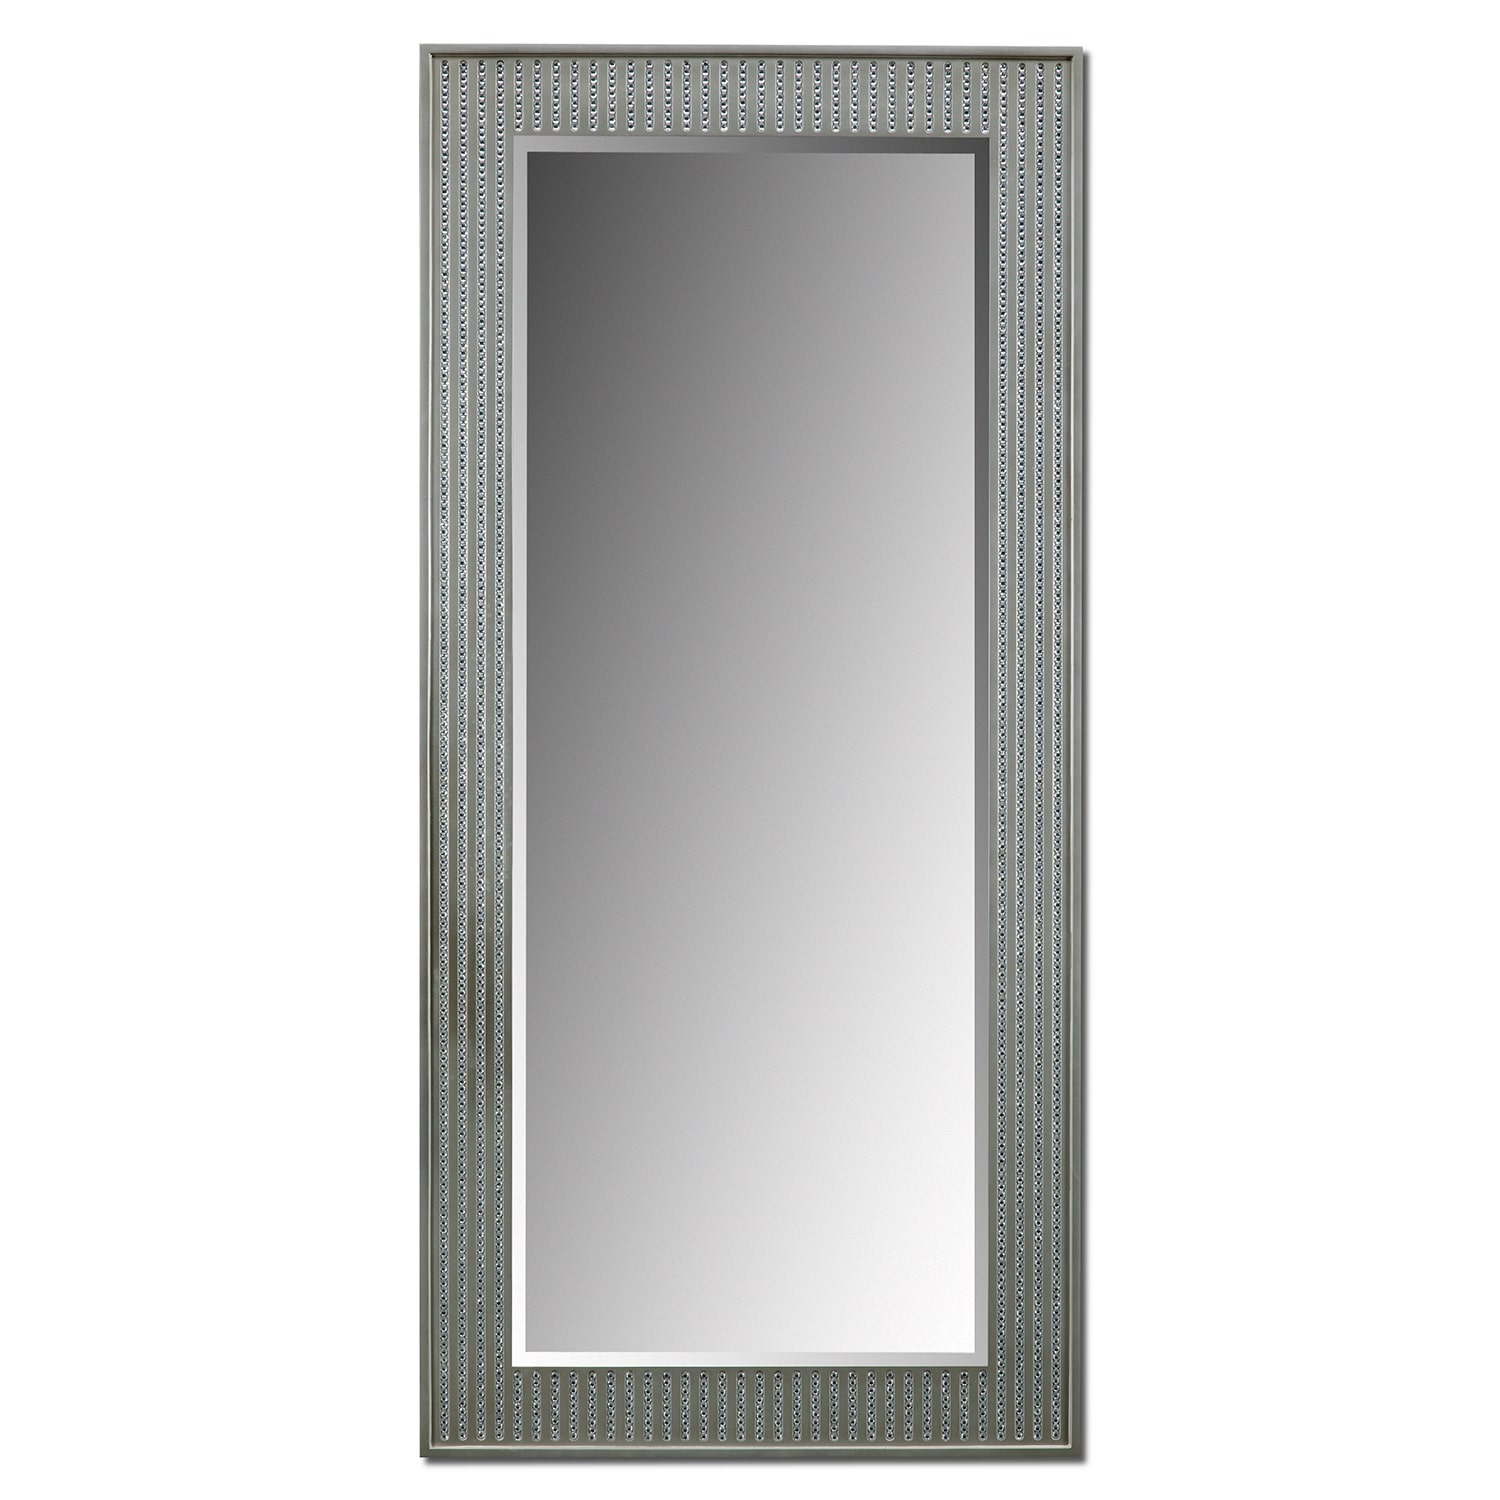 Home Accessories - Bling Glam Floor Mirror